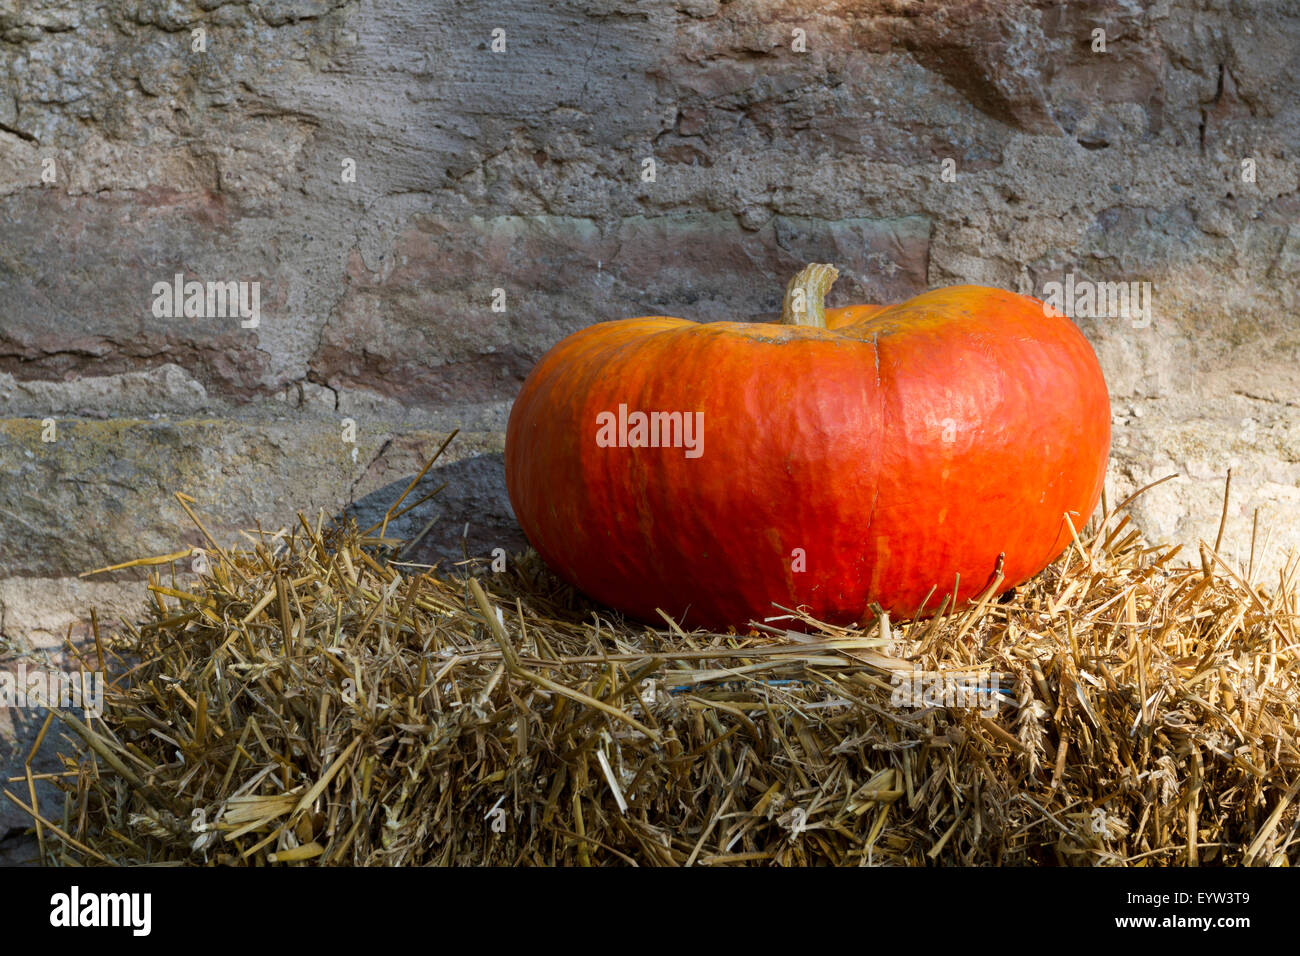 Pumpkin - Stock Image